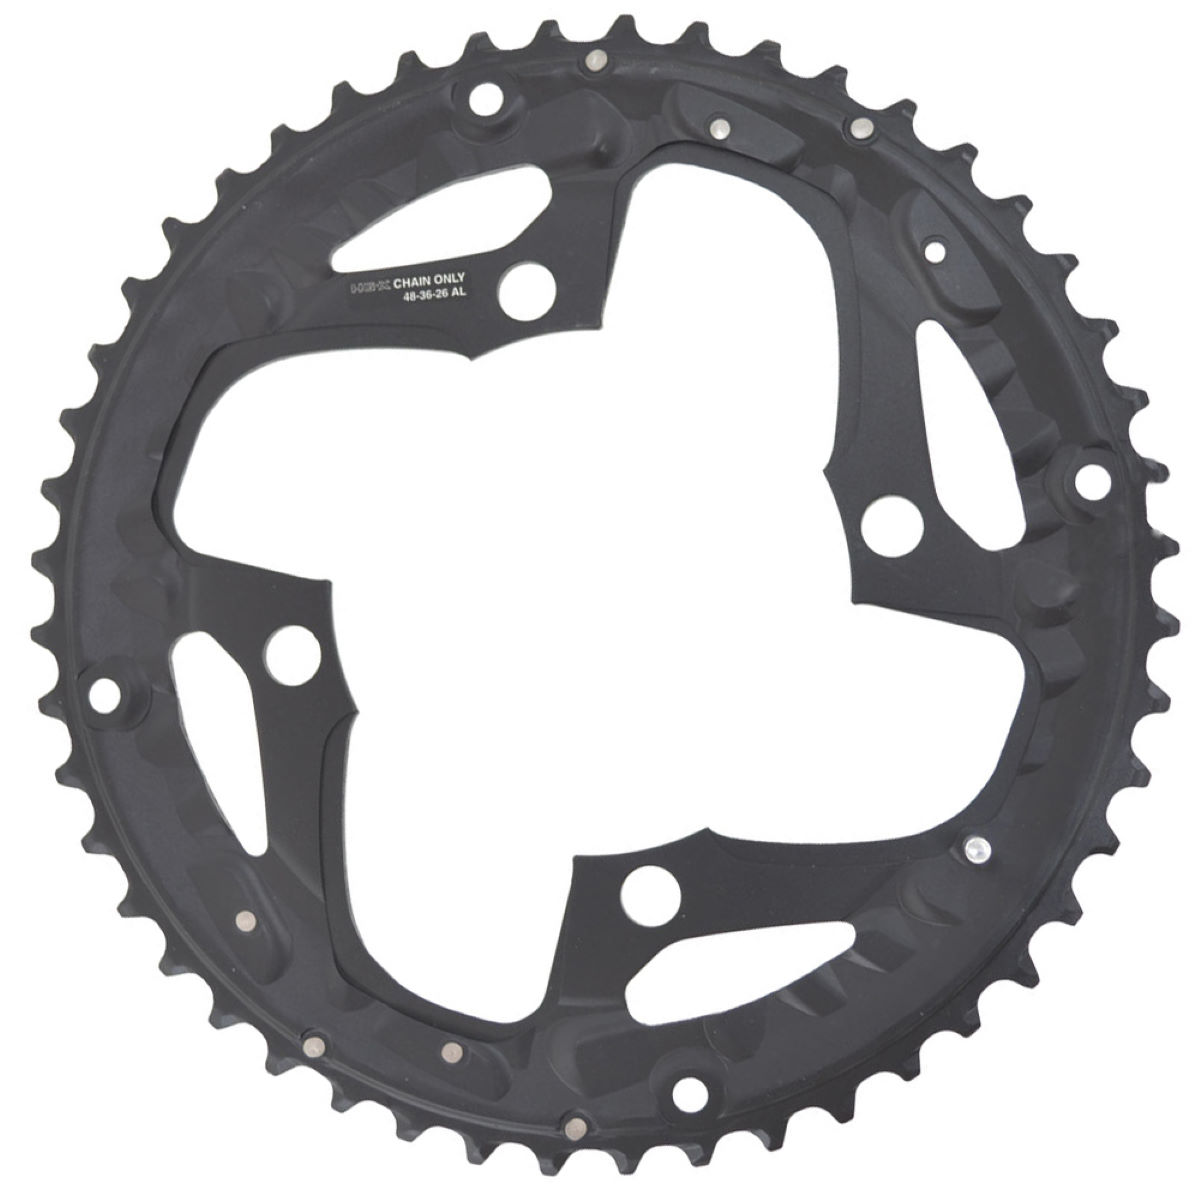 Shimano Deore FCM610 10 Speed Triple Chainrings - Platos